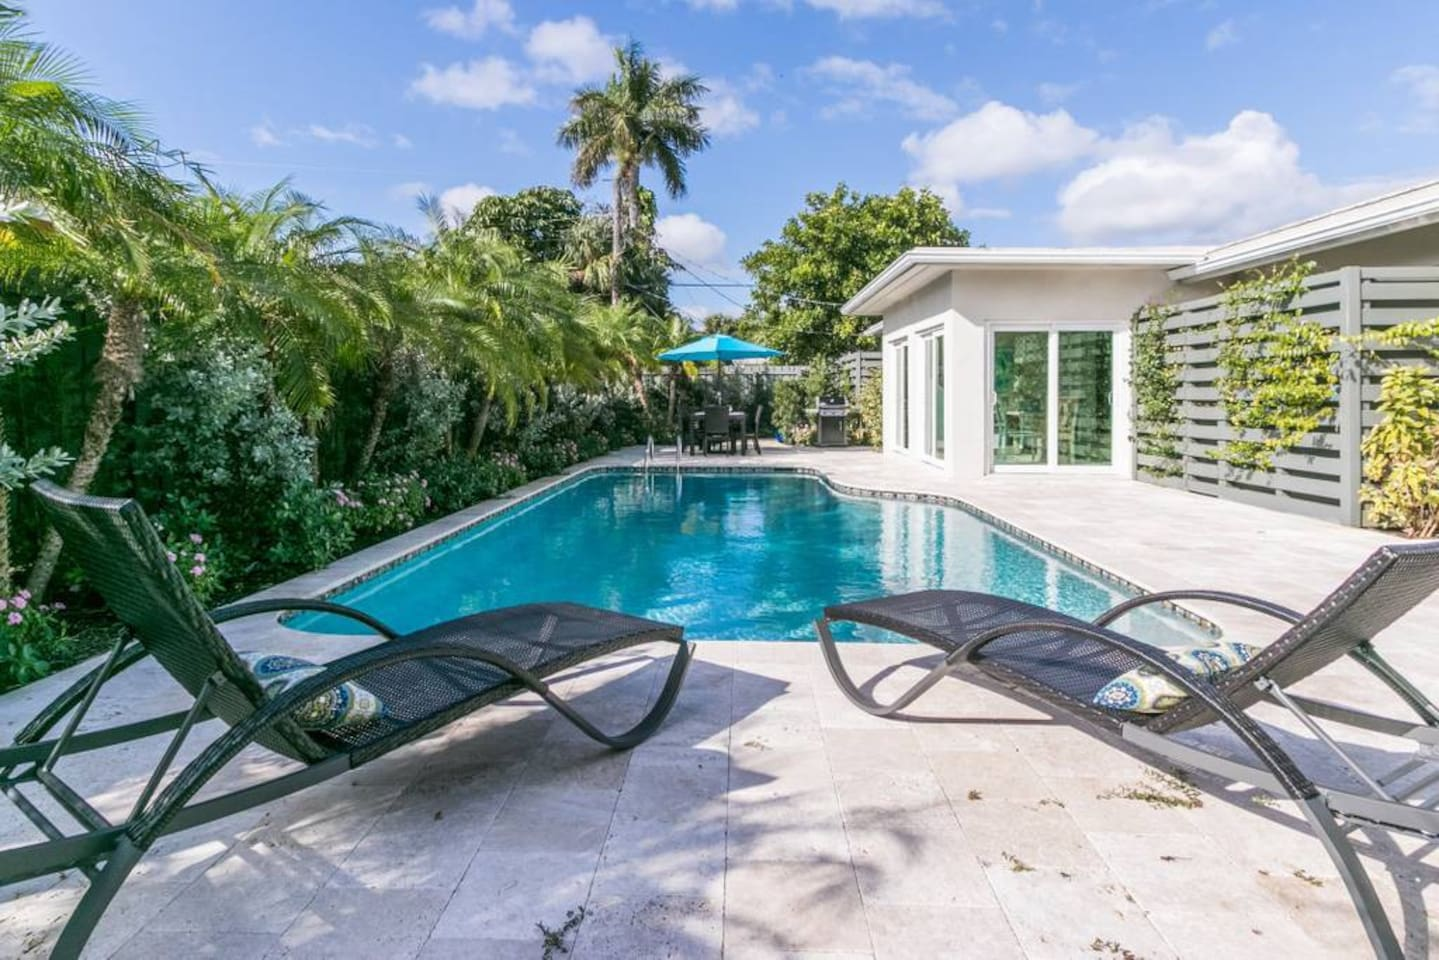 Loungers by private tropical pool.